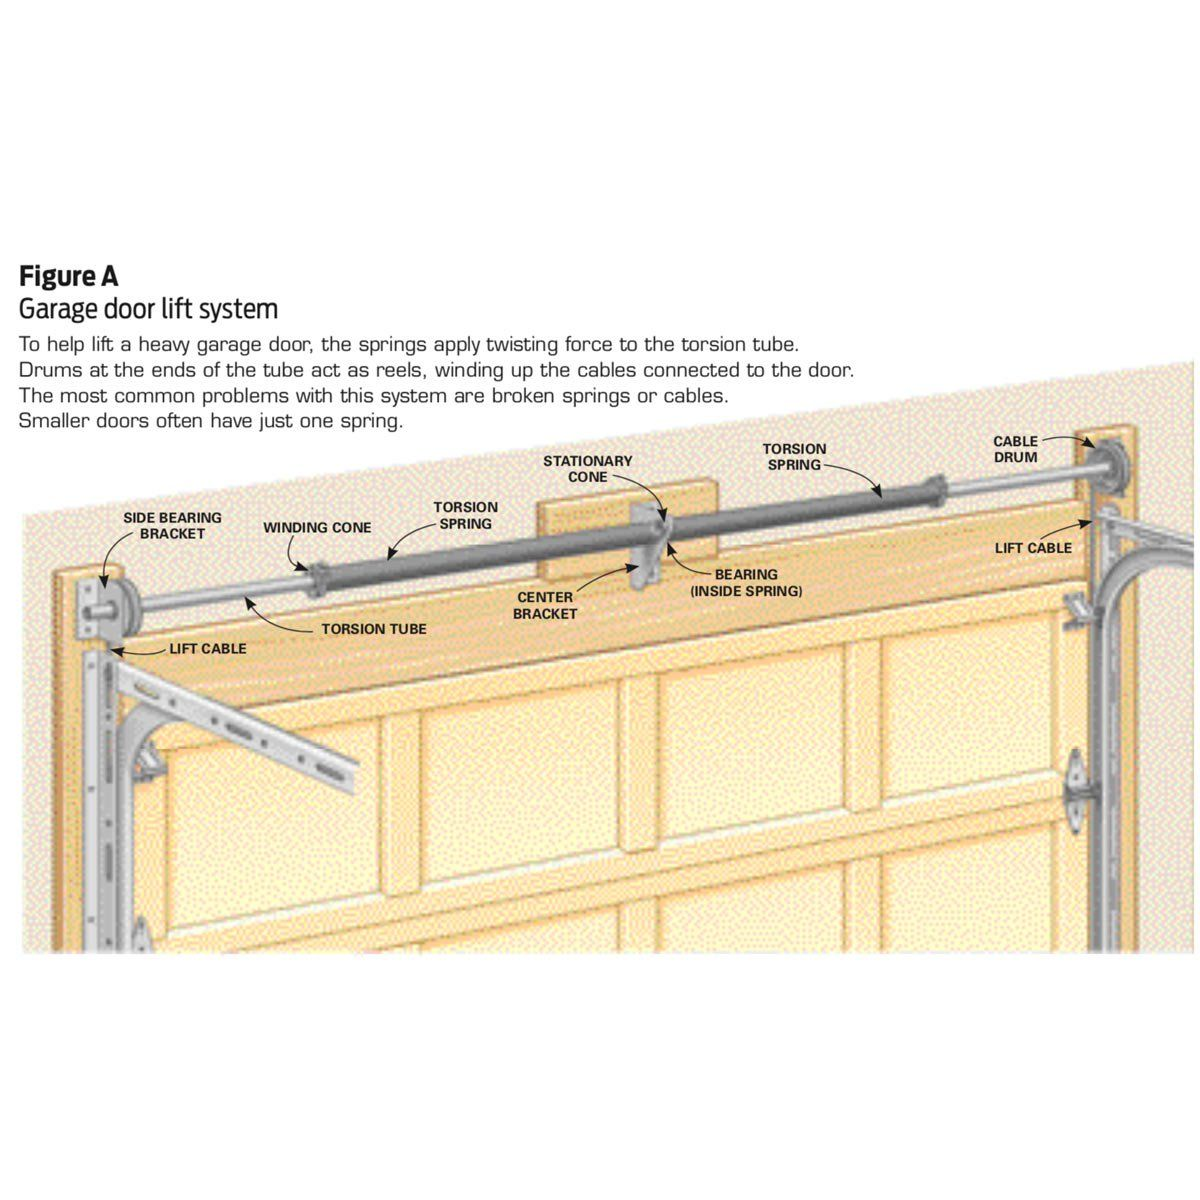 How To Repair Garage Door Springs And Cables Garage Door Repair Garage Door Springs Garage Repair